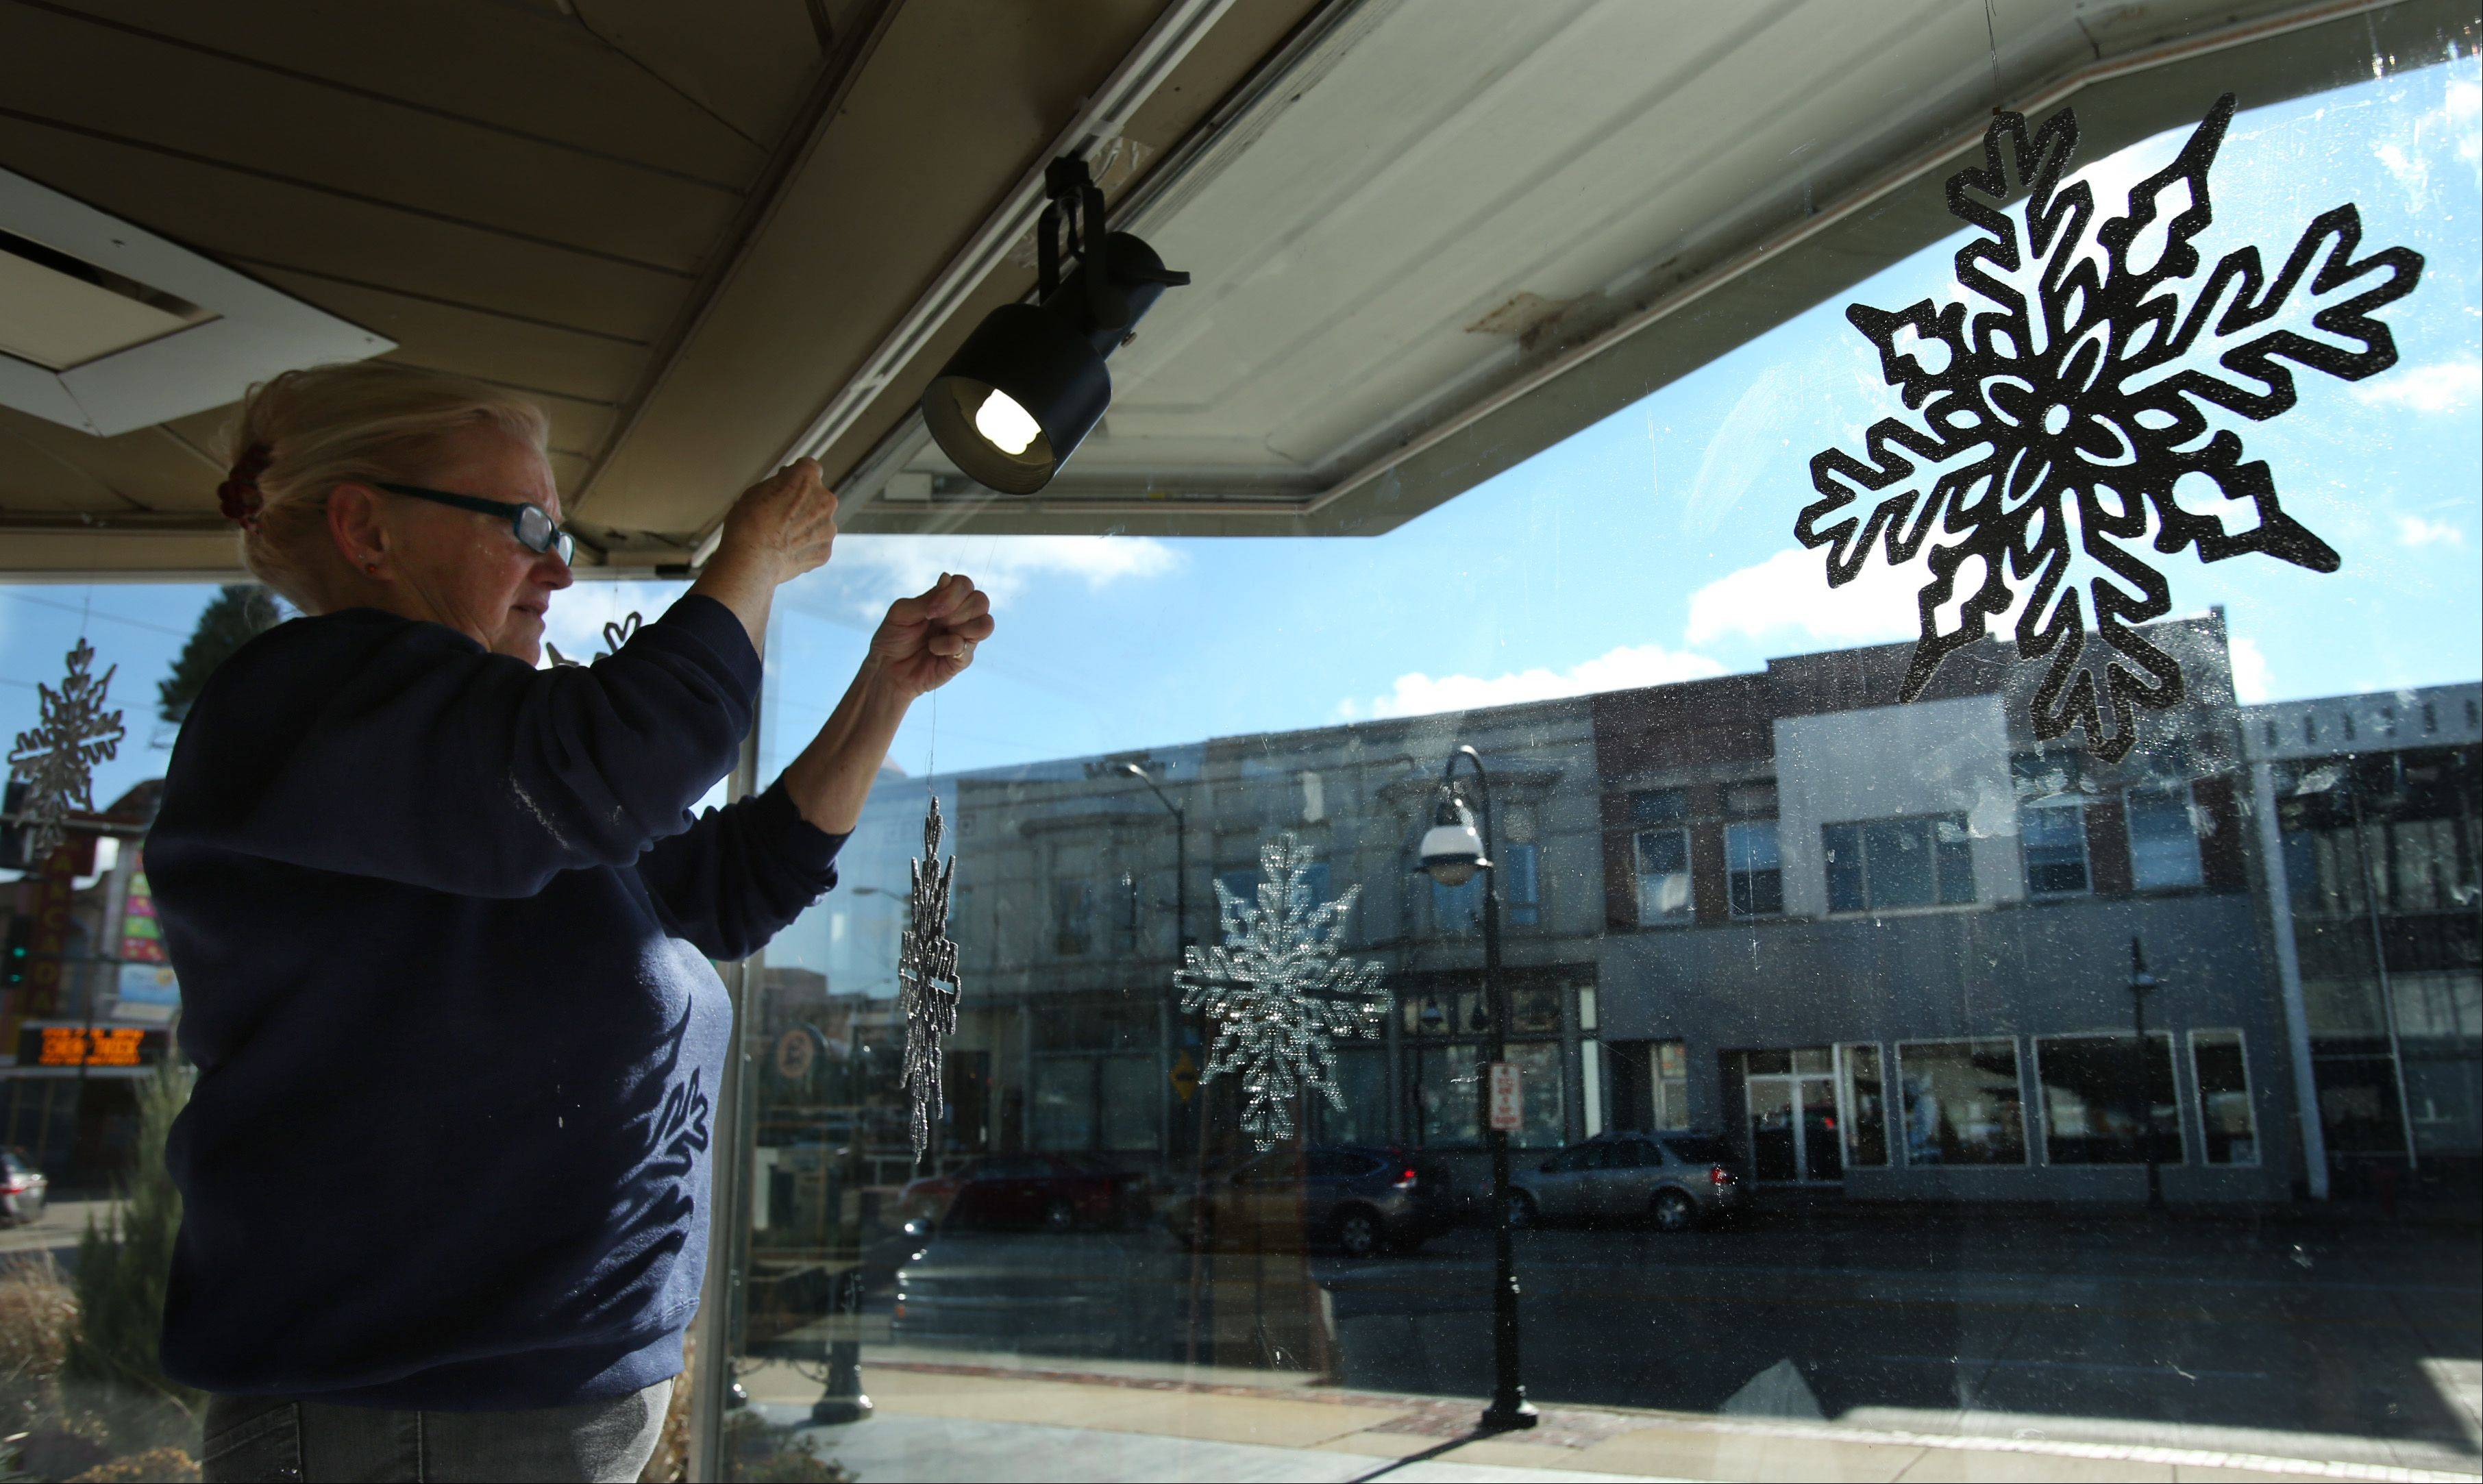 Volunteer Janet Wilson, of St. Charles, hangs snowflake decorations as she and fellow volunteer Darlene Riebe install a Christmas display Monday morning in the large window on the south side of the St. Charles Municipal Center. The display will promote the Holiday Homecoming event, sponsored by the Downtown St. Charles Partnership. Despite the chilly winds and cold temperatures Monday, both women were working up a good sweat in the display window as the sun continued to heat up their confined work space. Both women say it's even worse working inside that window in the summer.